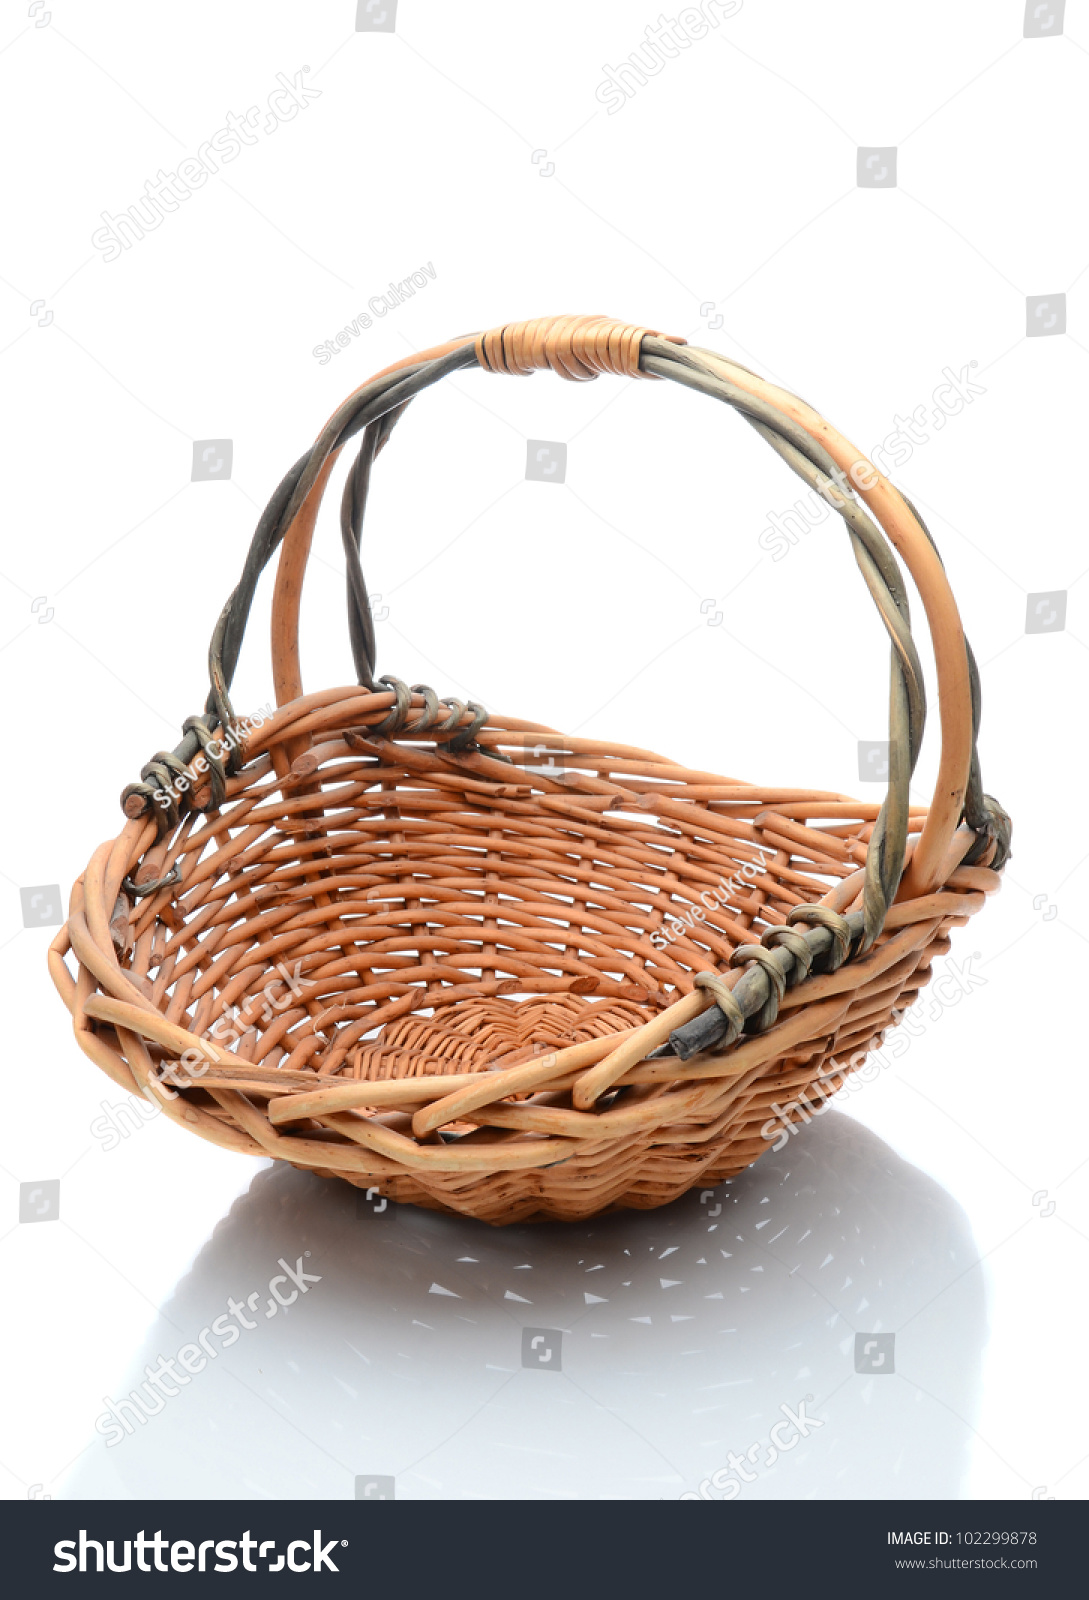 White wicker baskets with handle - Oval Wicker Flower Basket With Handle Isolated On A White Background With Slight Reflection